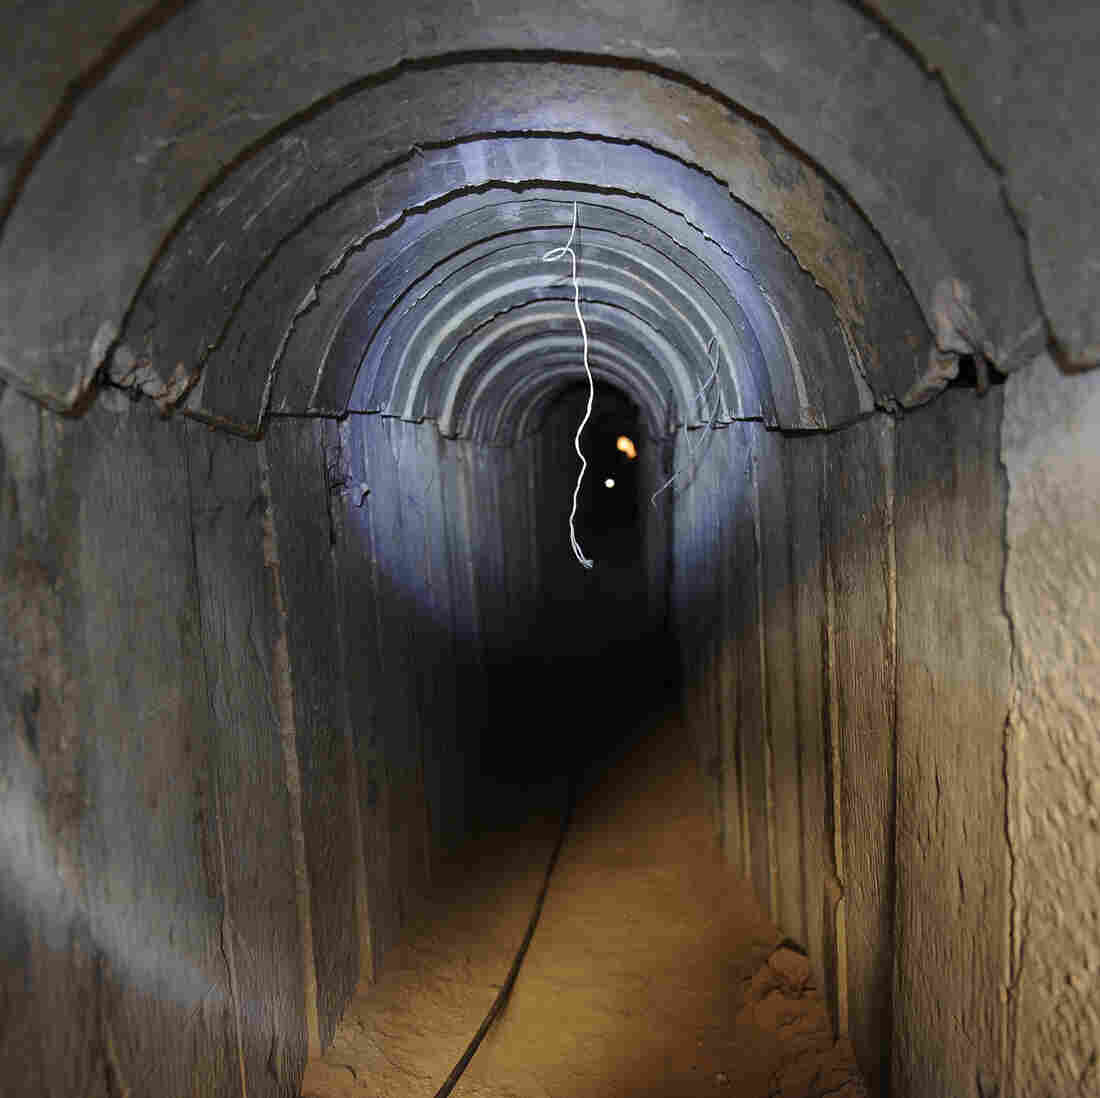 Israel Discovers Tunnel Leading To Gaza, Army Says